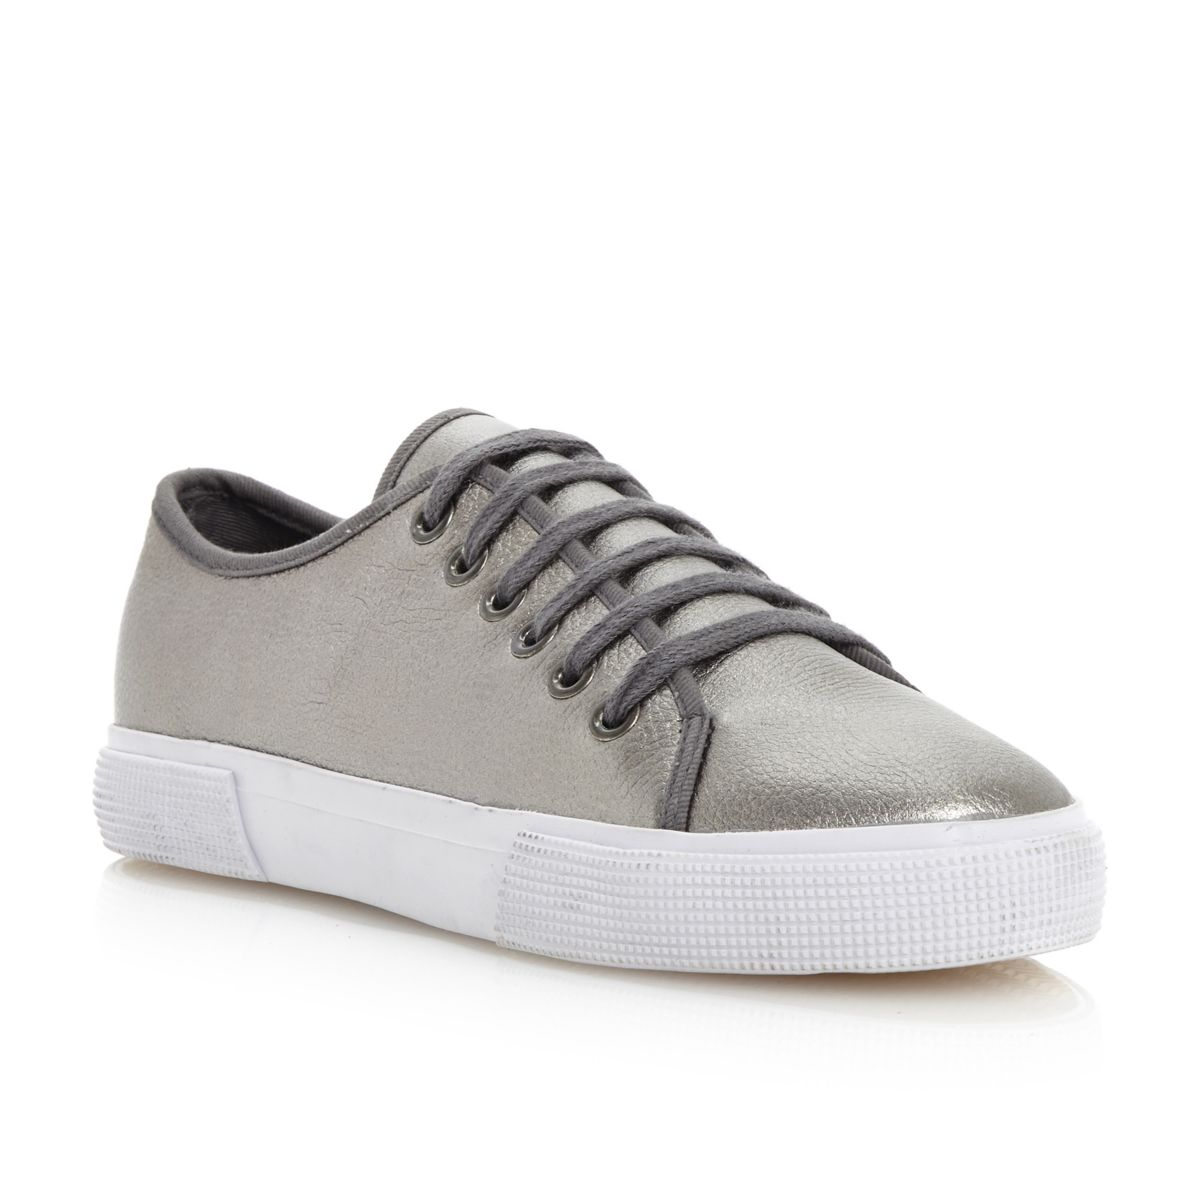 NEW-BERTIE-LADIES-POTTER-WOMENS-PEWTER-GREY-LACE-UP-TRAINERS-SHOES-SIZE-3-8-UK